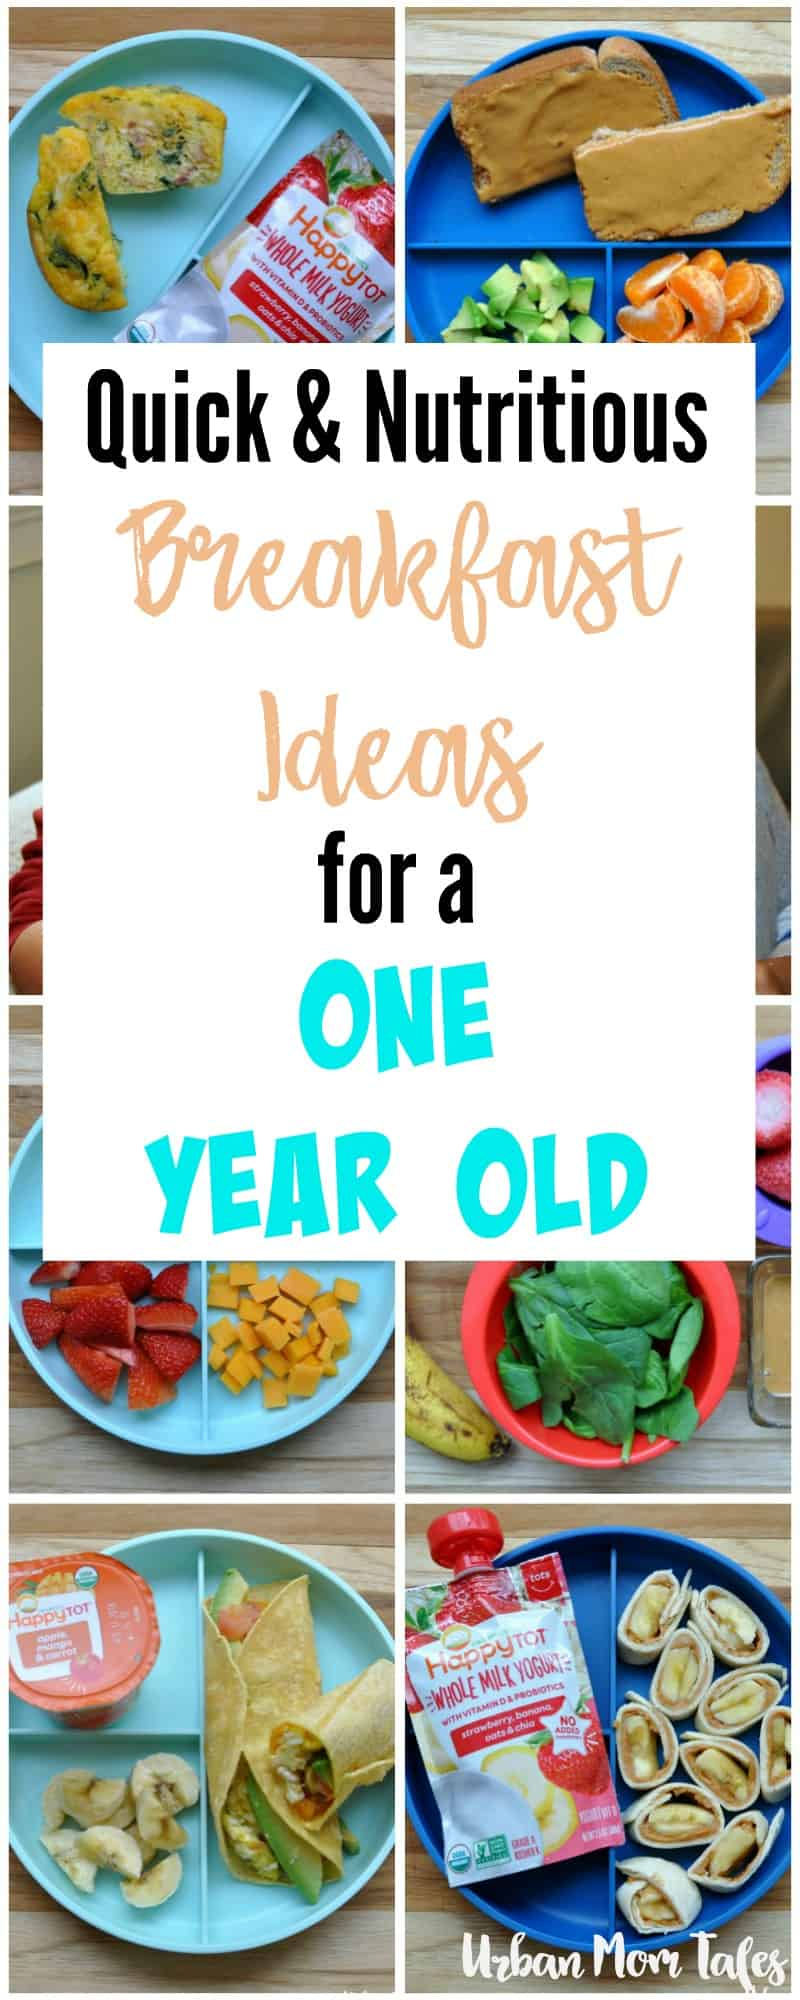 quick & nutritious breakfast ideas for a one year old · urban mom tales